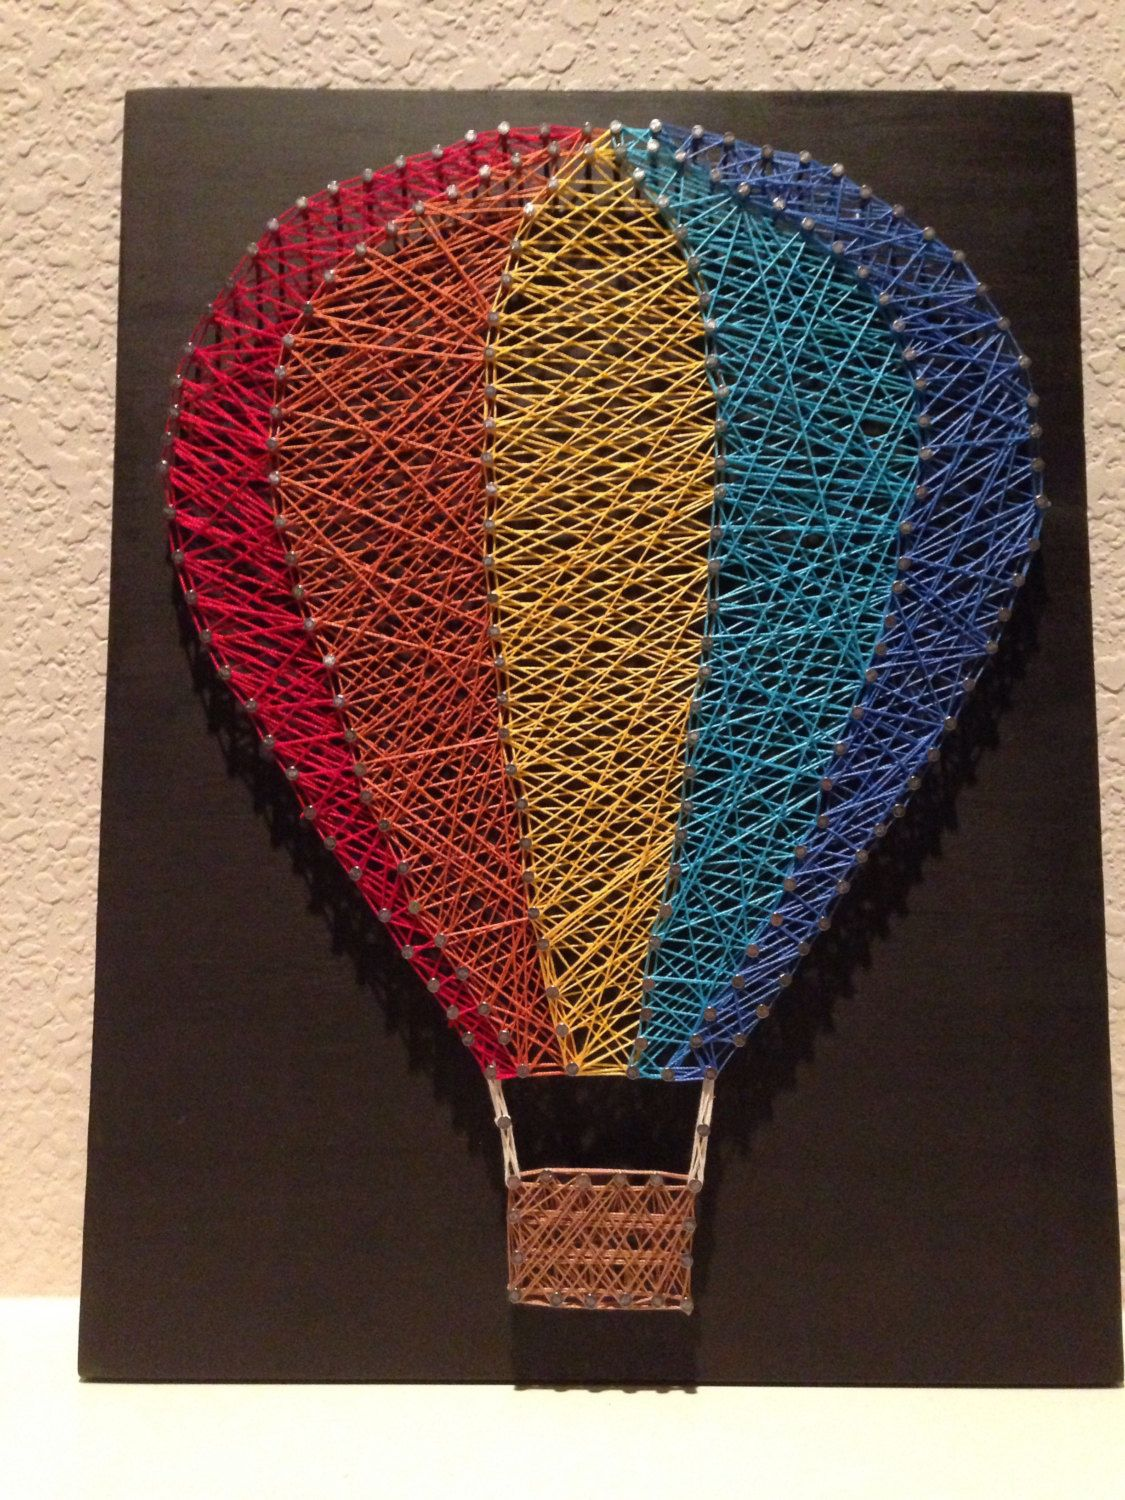 Uncategorized String Art Balloons a personal favorite from my etsy shop httpswww comlisting items similar to balloon string art on etsy